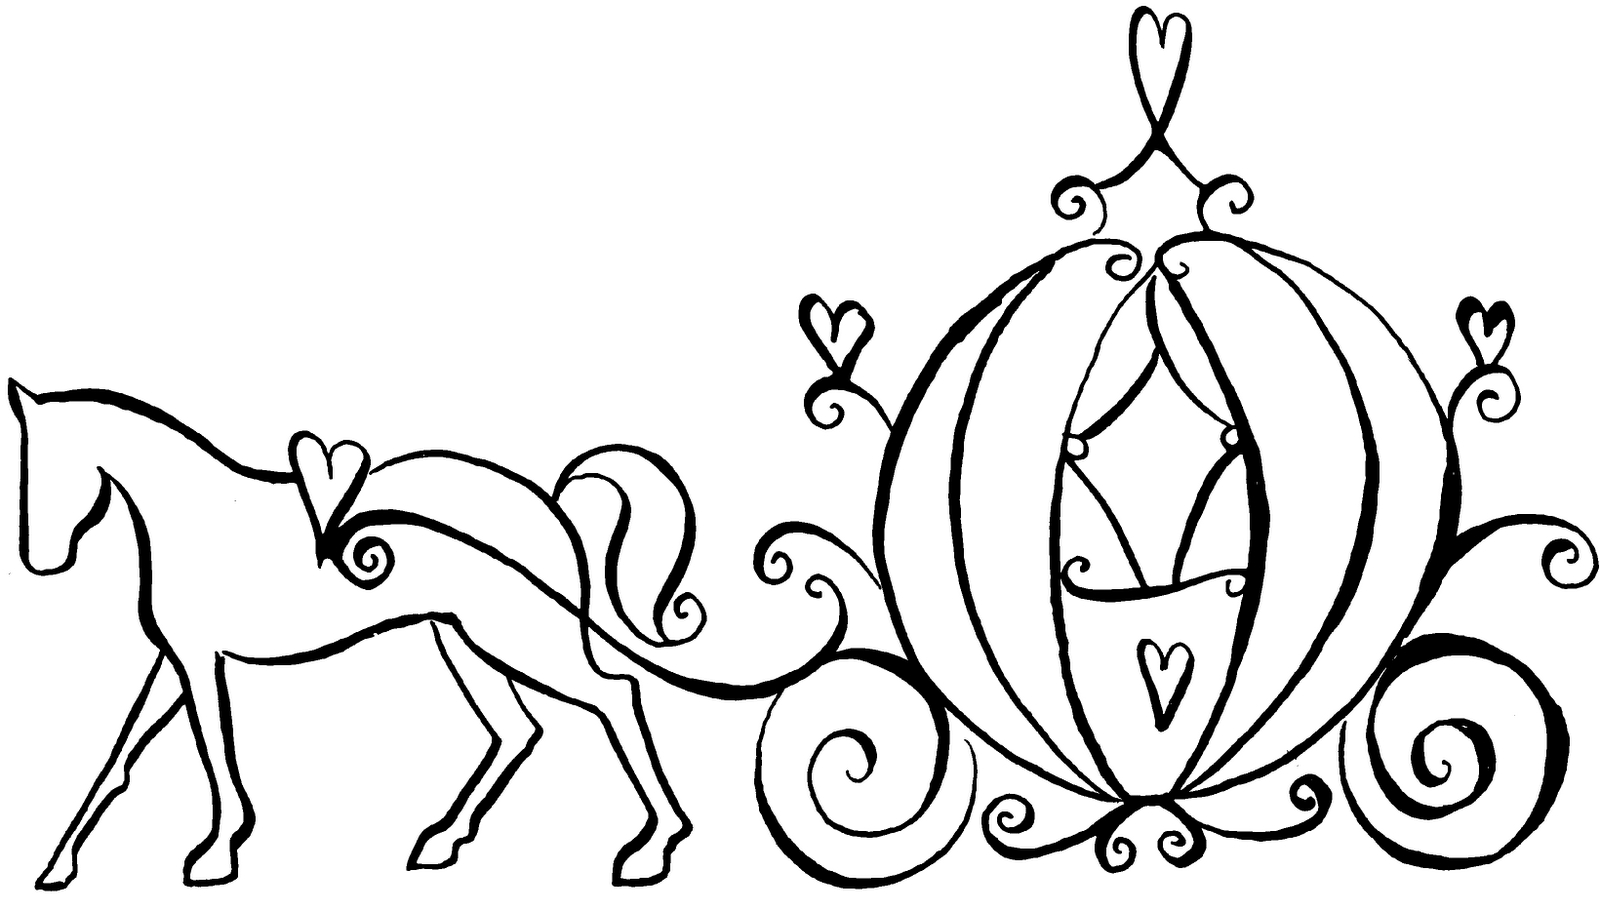 horse and carriage coloring pages cinderella carriage drawing at getdrawings free download horse and pages coloring carriage